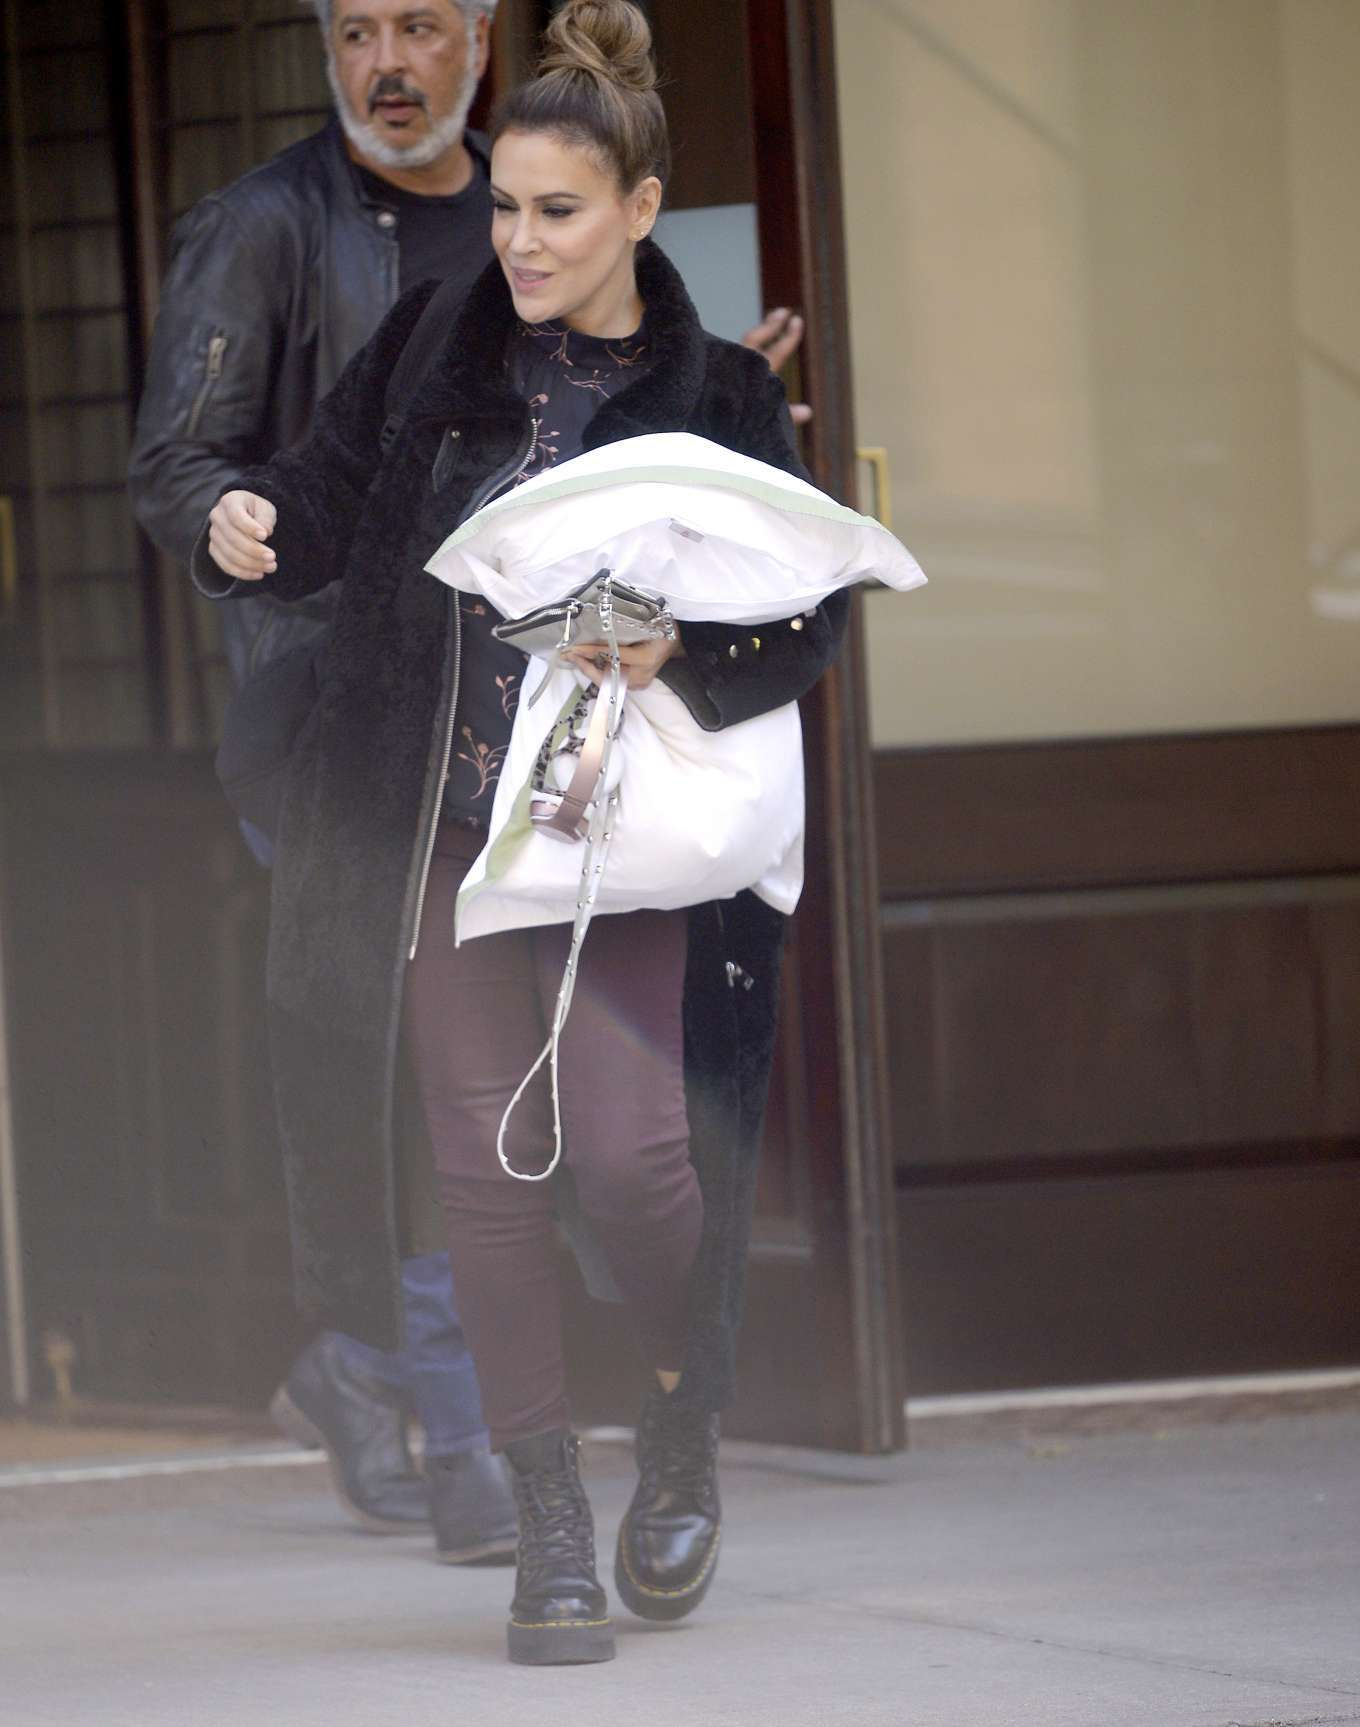 Alyssa Milano - Leaves her hotel with pillow in New York City